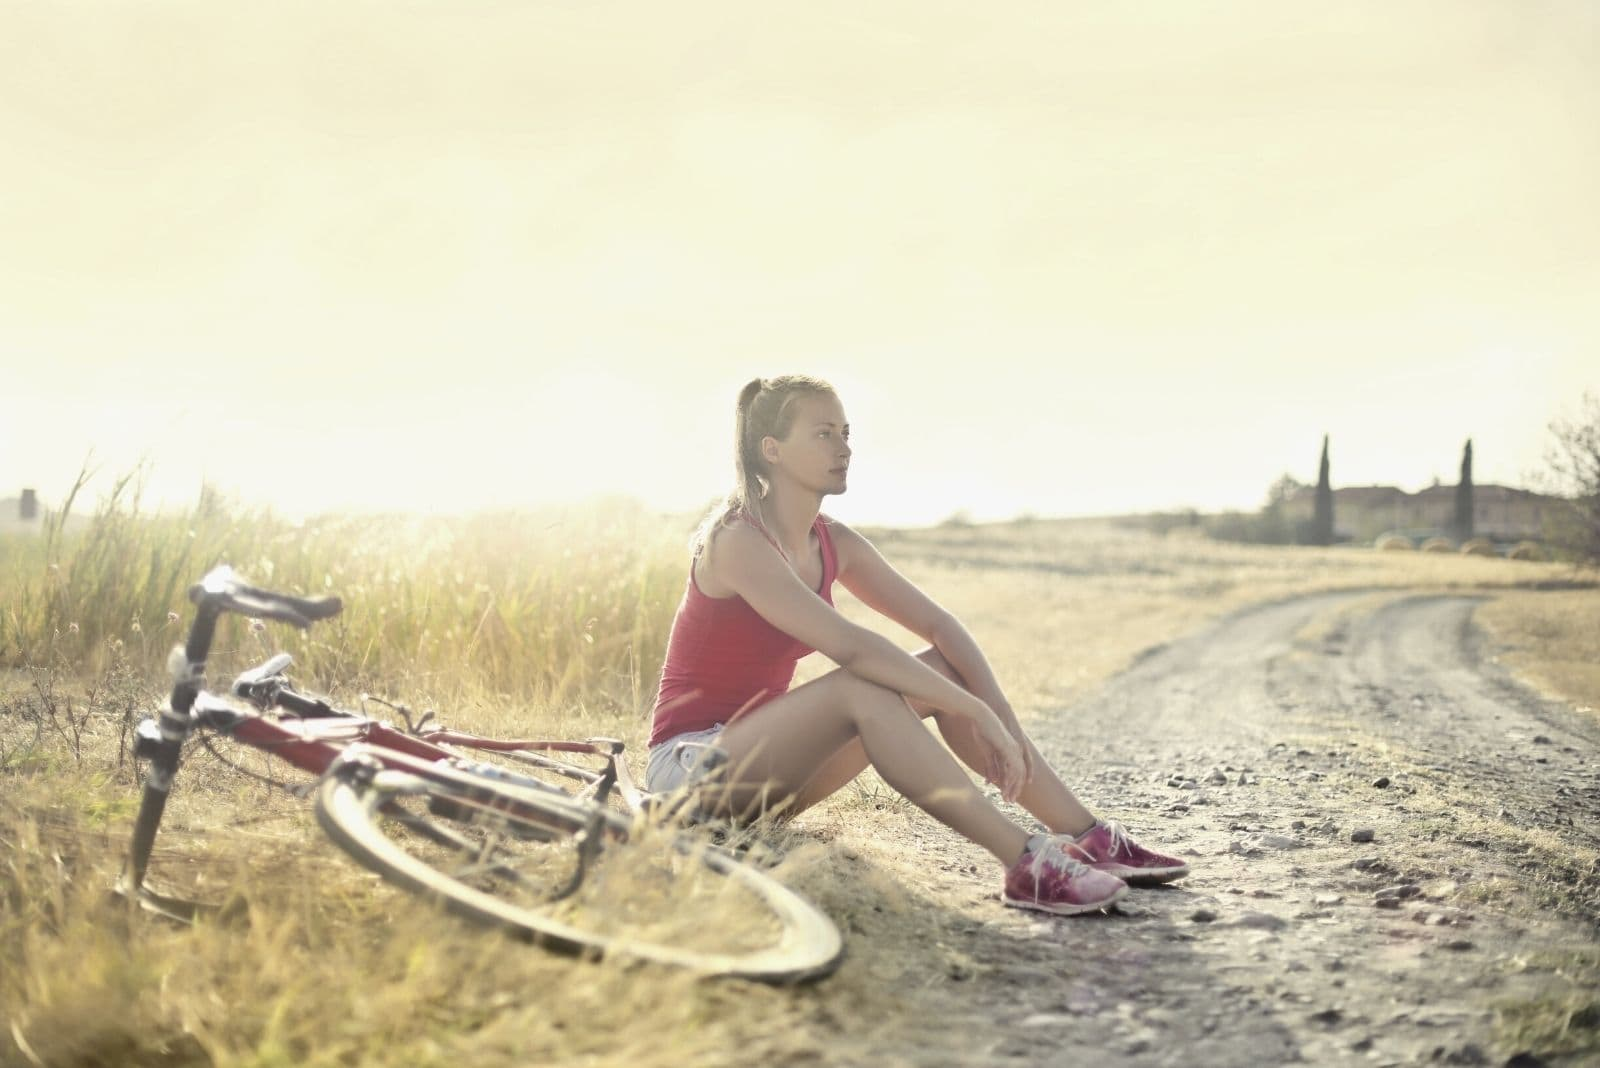 woman sitting by the side of the dirt road with the bike beside her